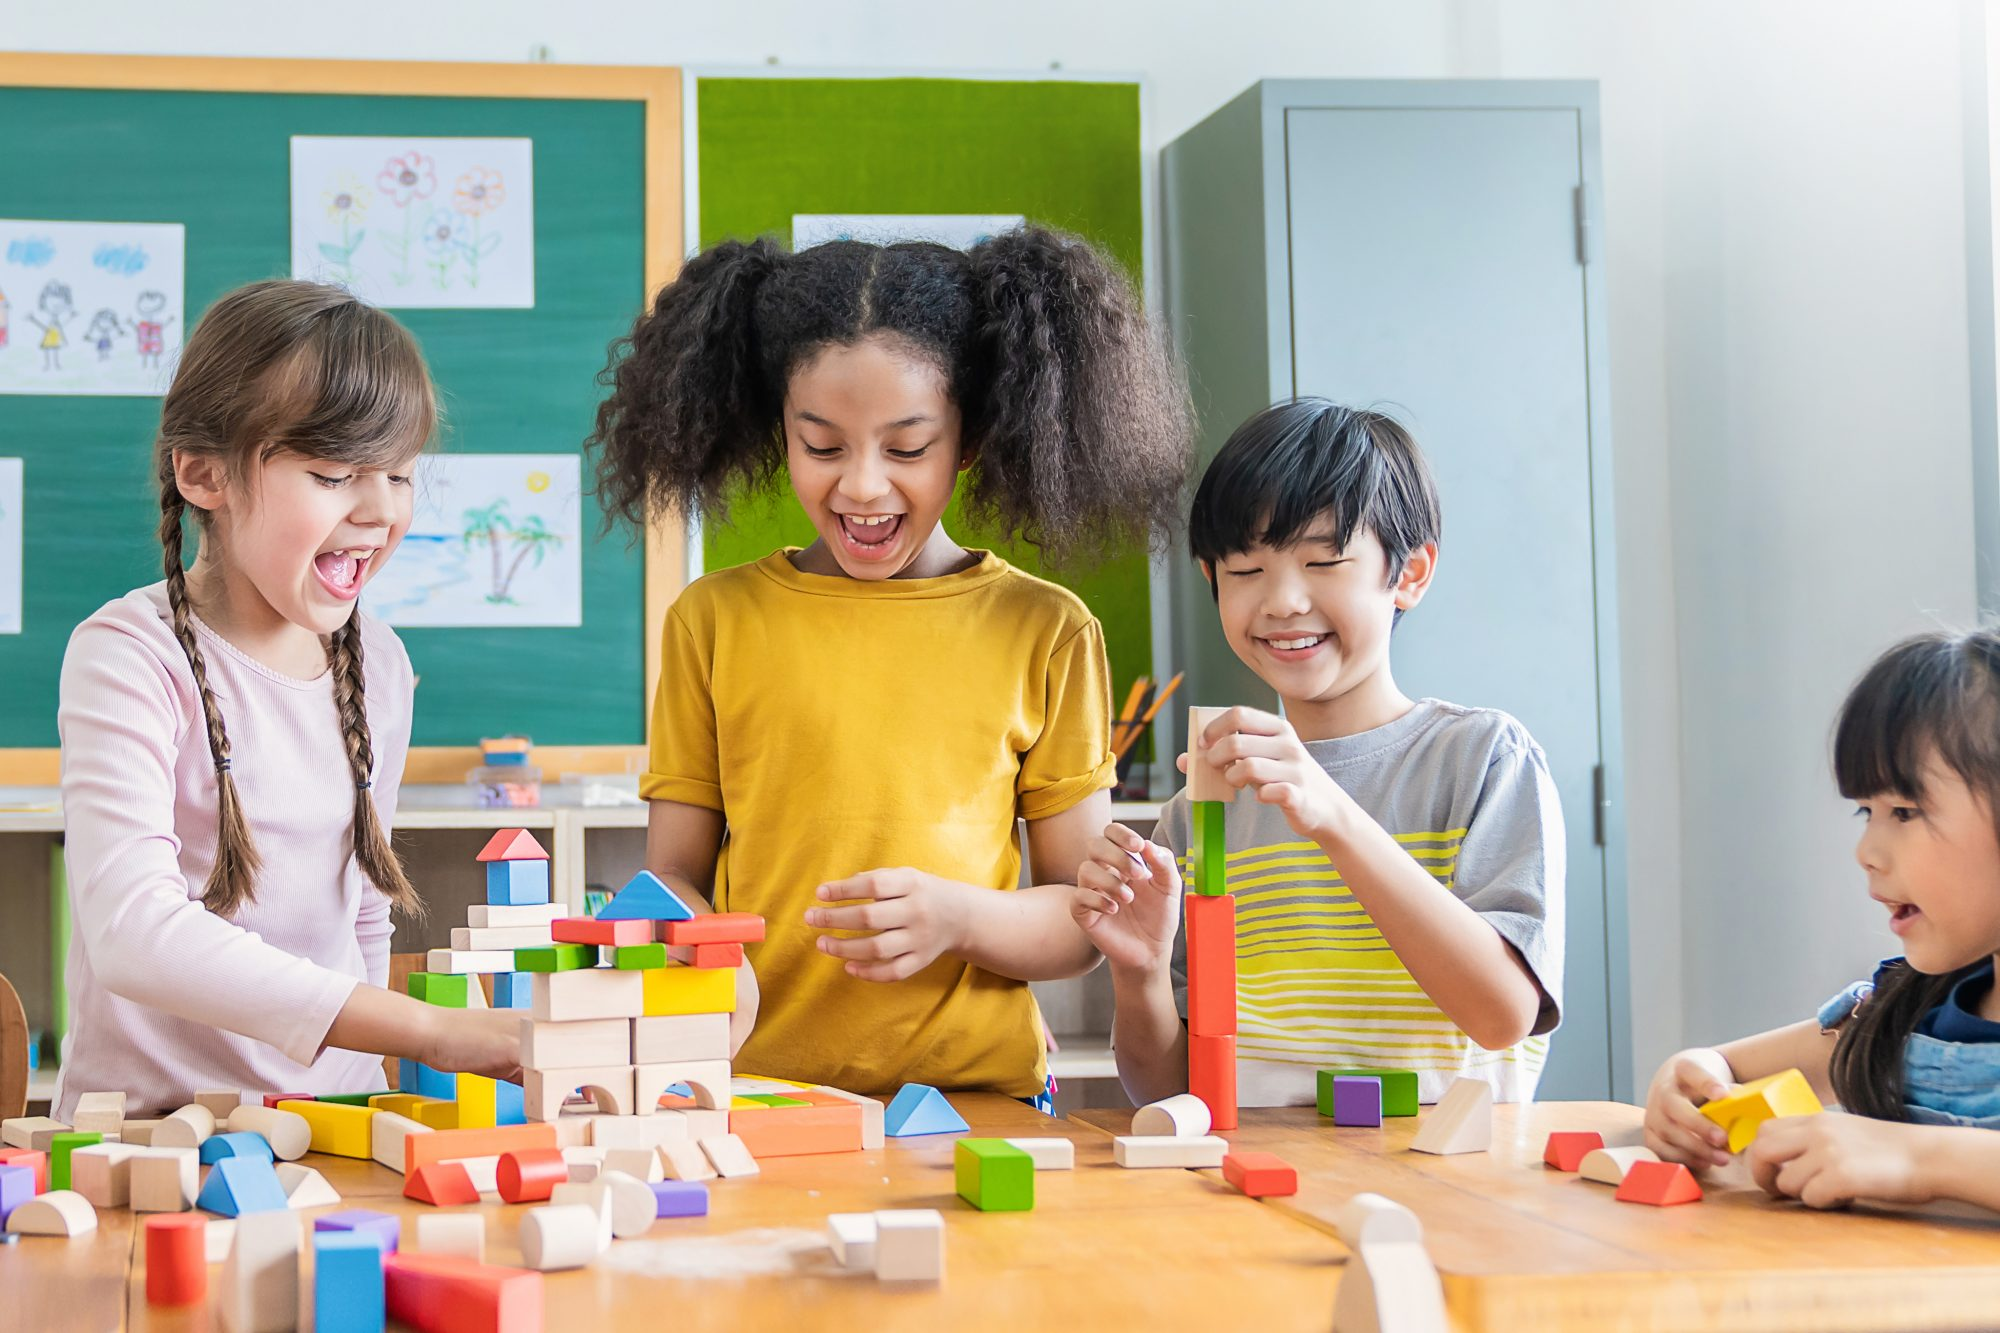 four kids in classroom playing with blocks on table